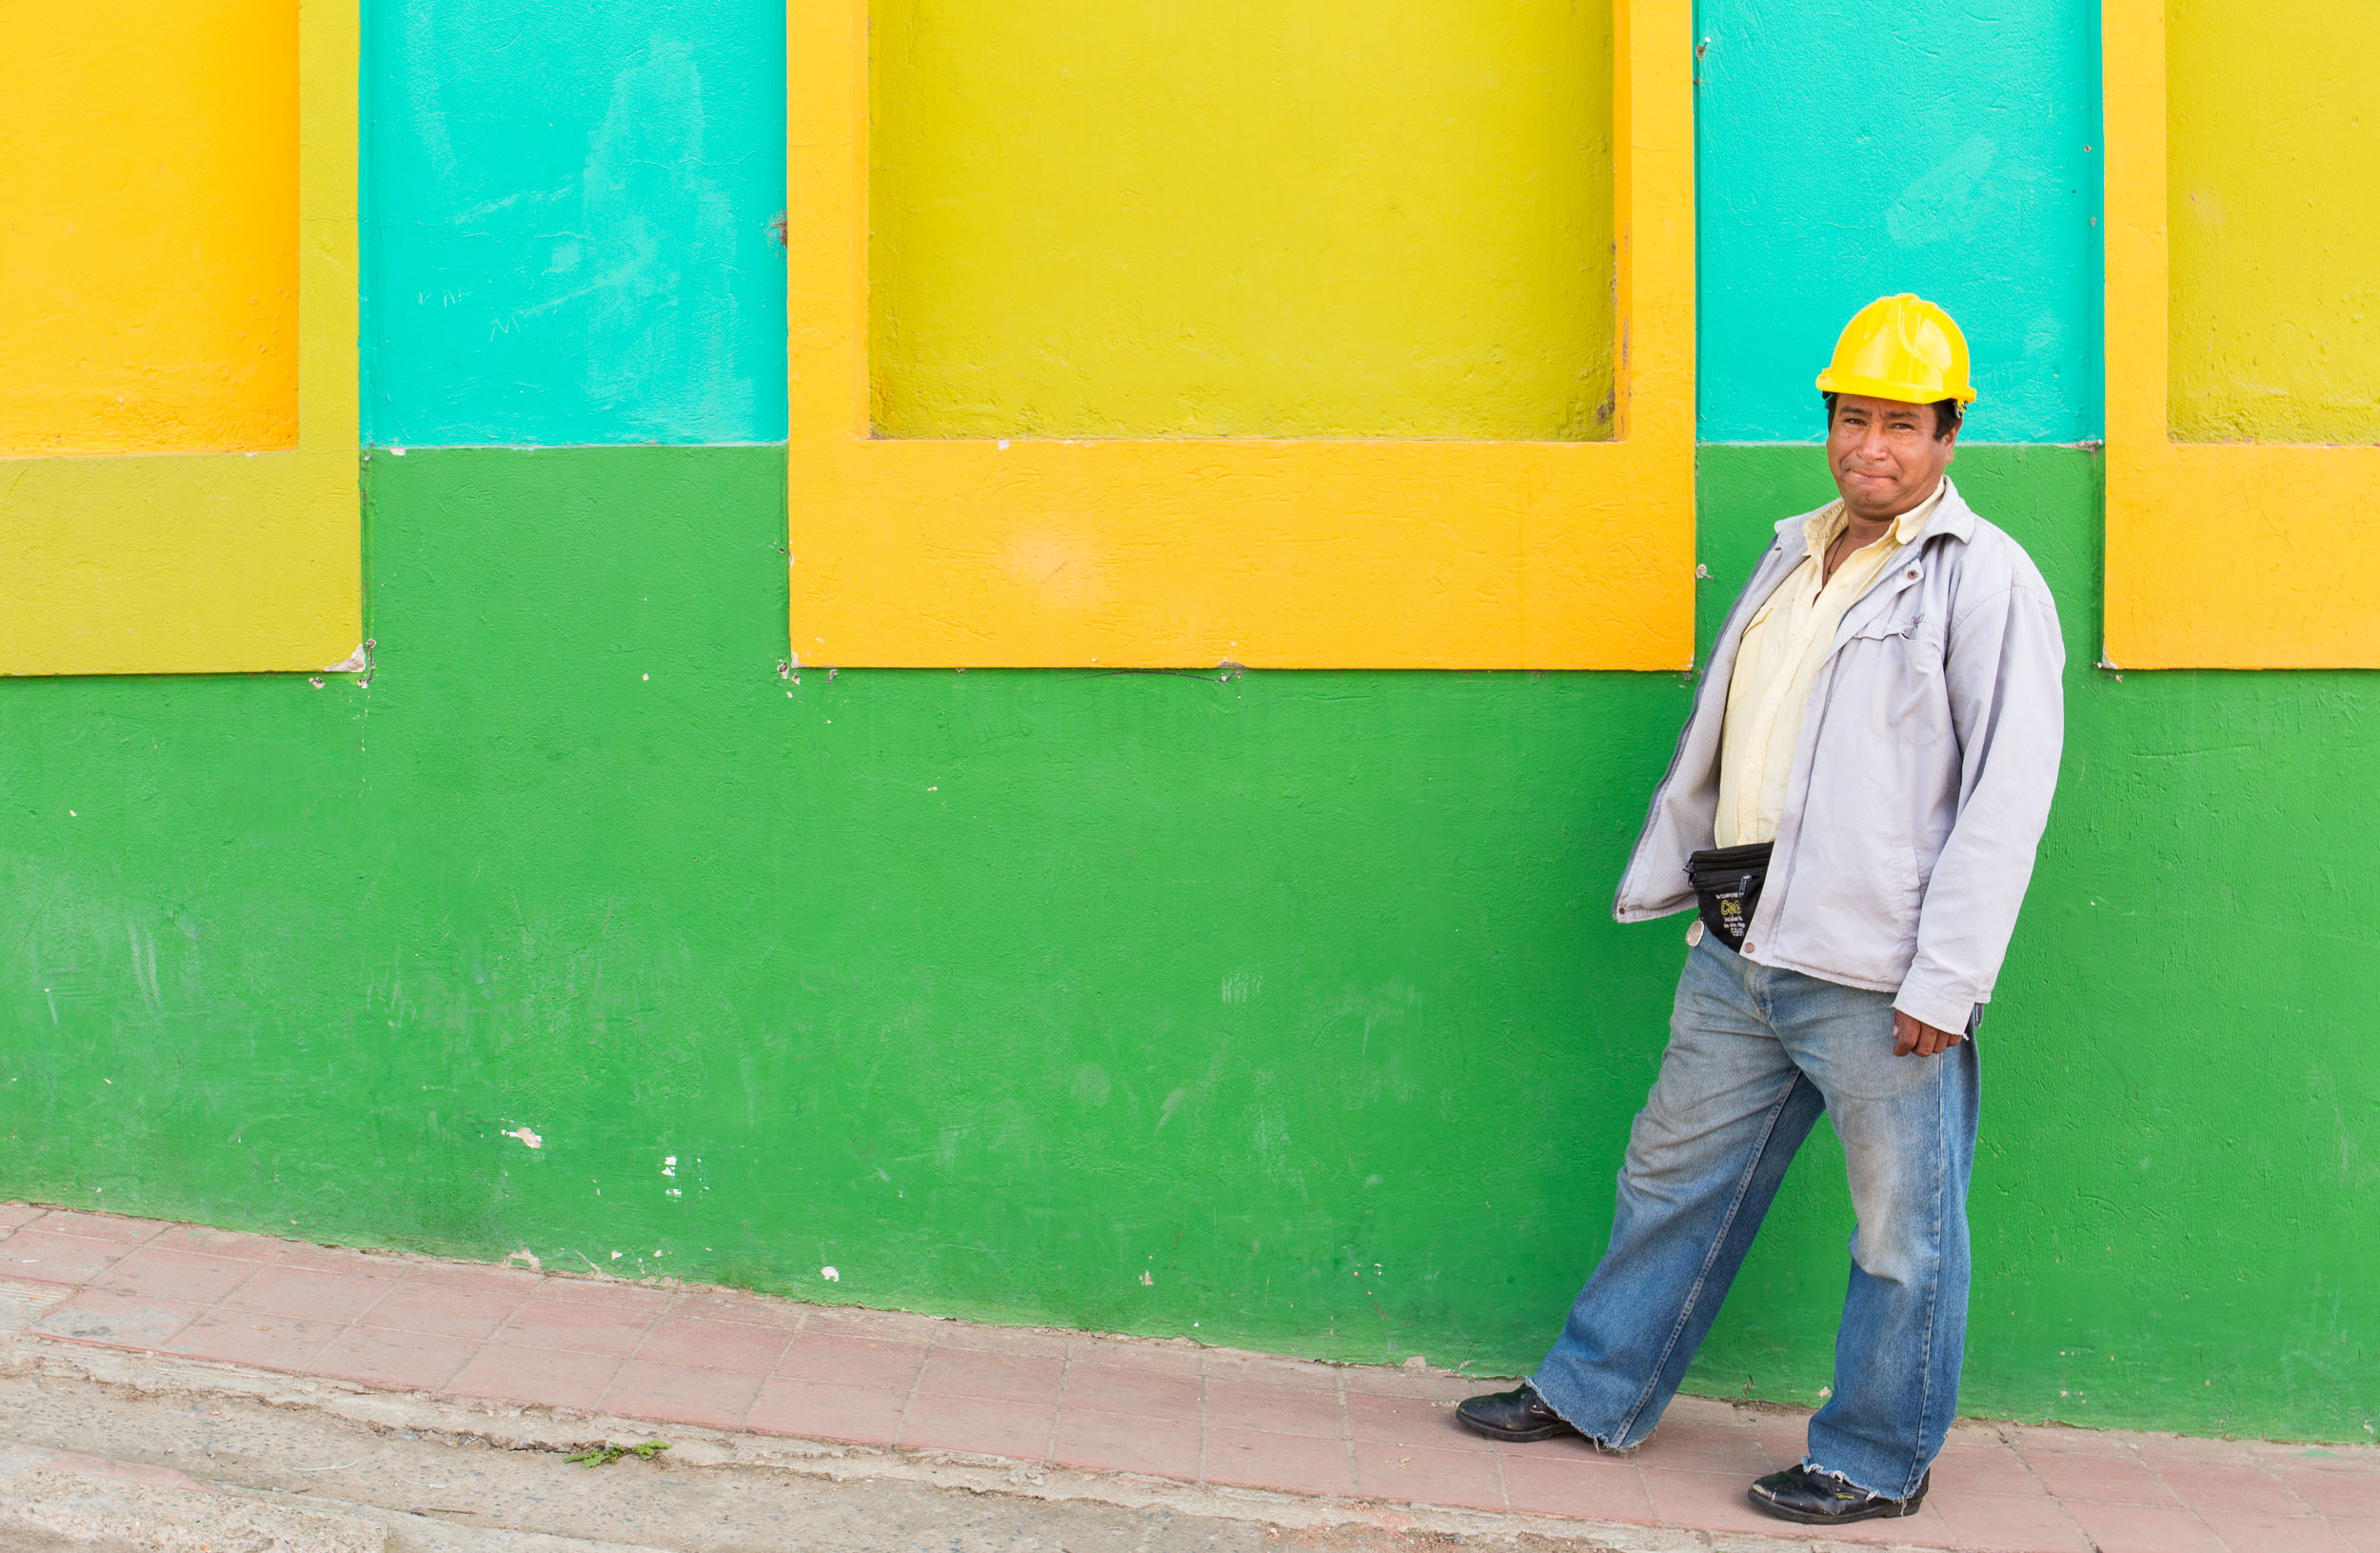 Colombia-Villa-de-Leyva-Yellow-Construction-Helmet